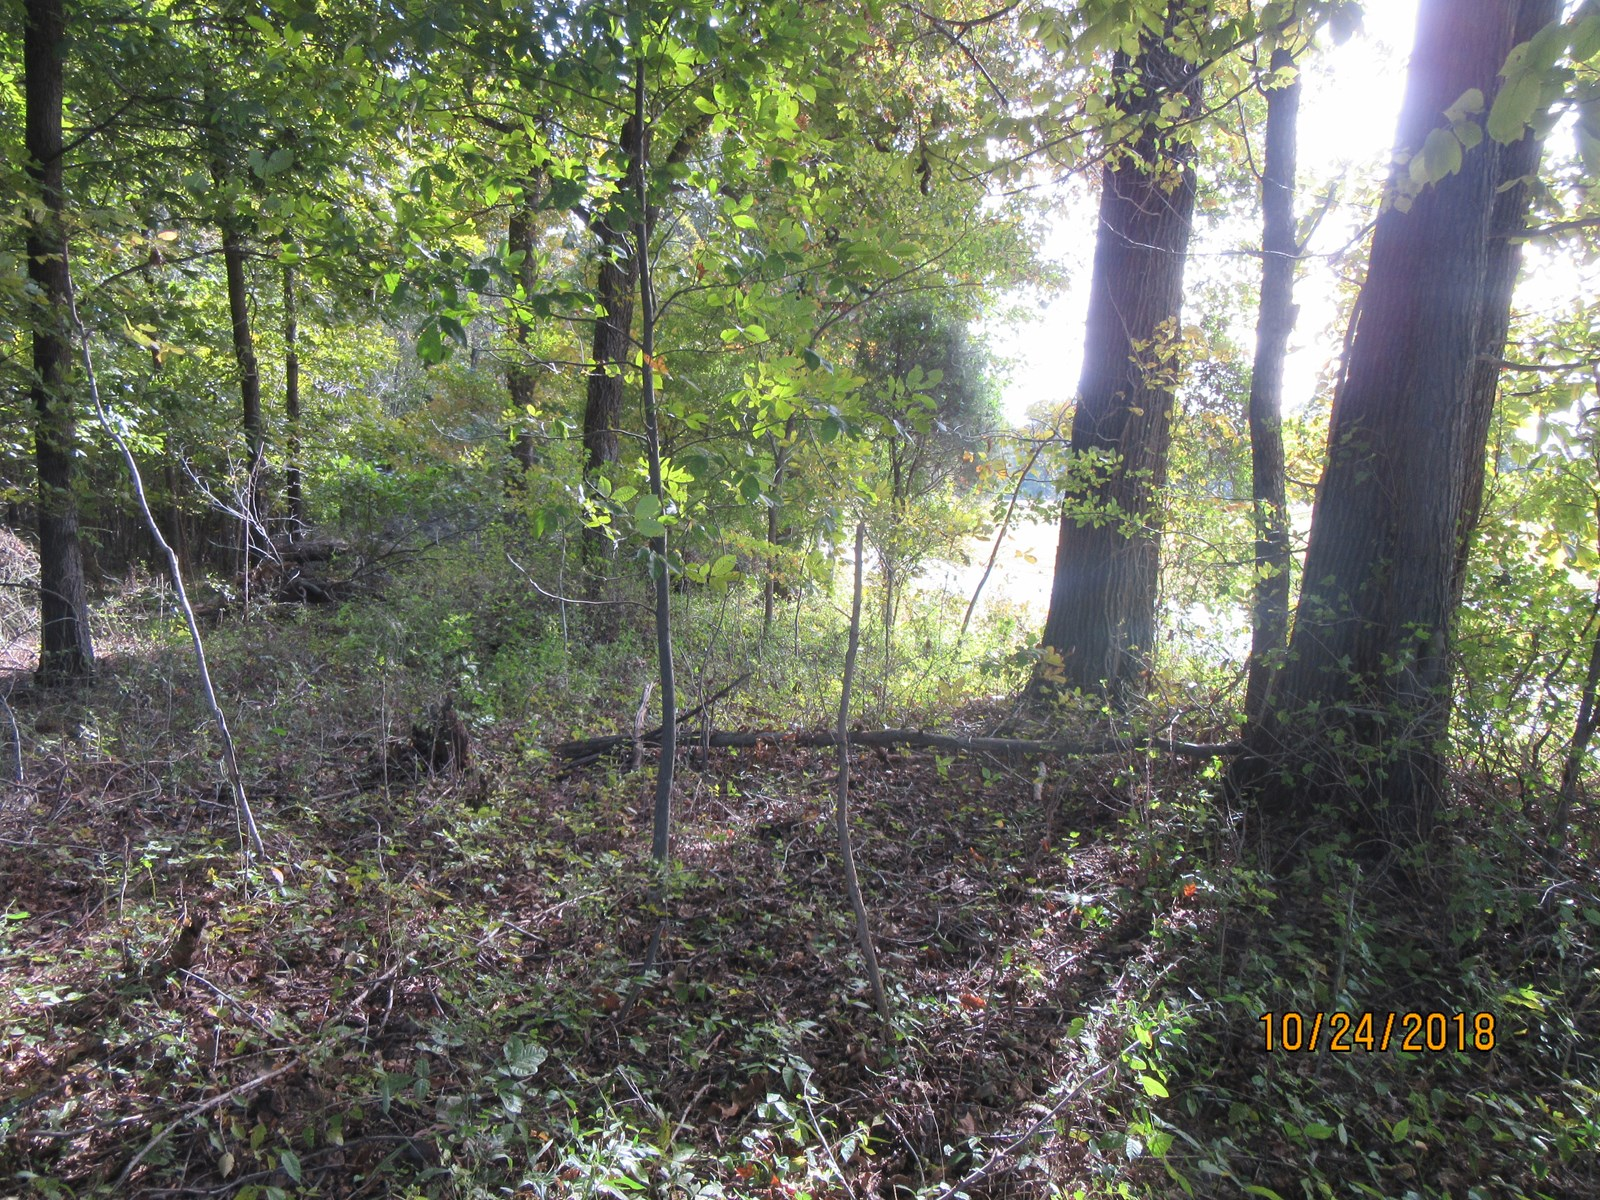 Land To Call Your Own - 10 Acres Metropolis, IL